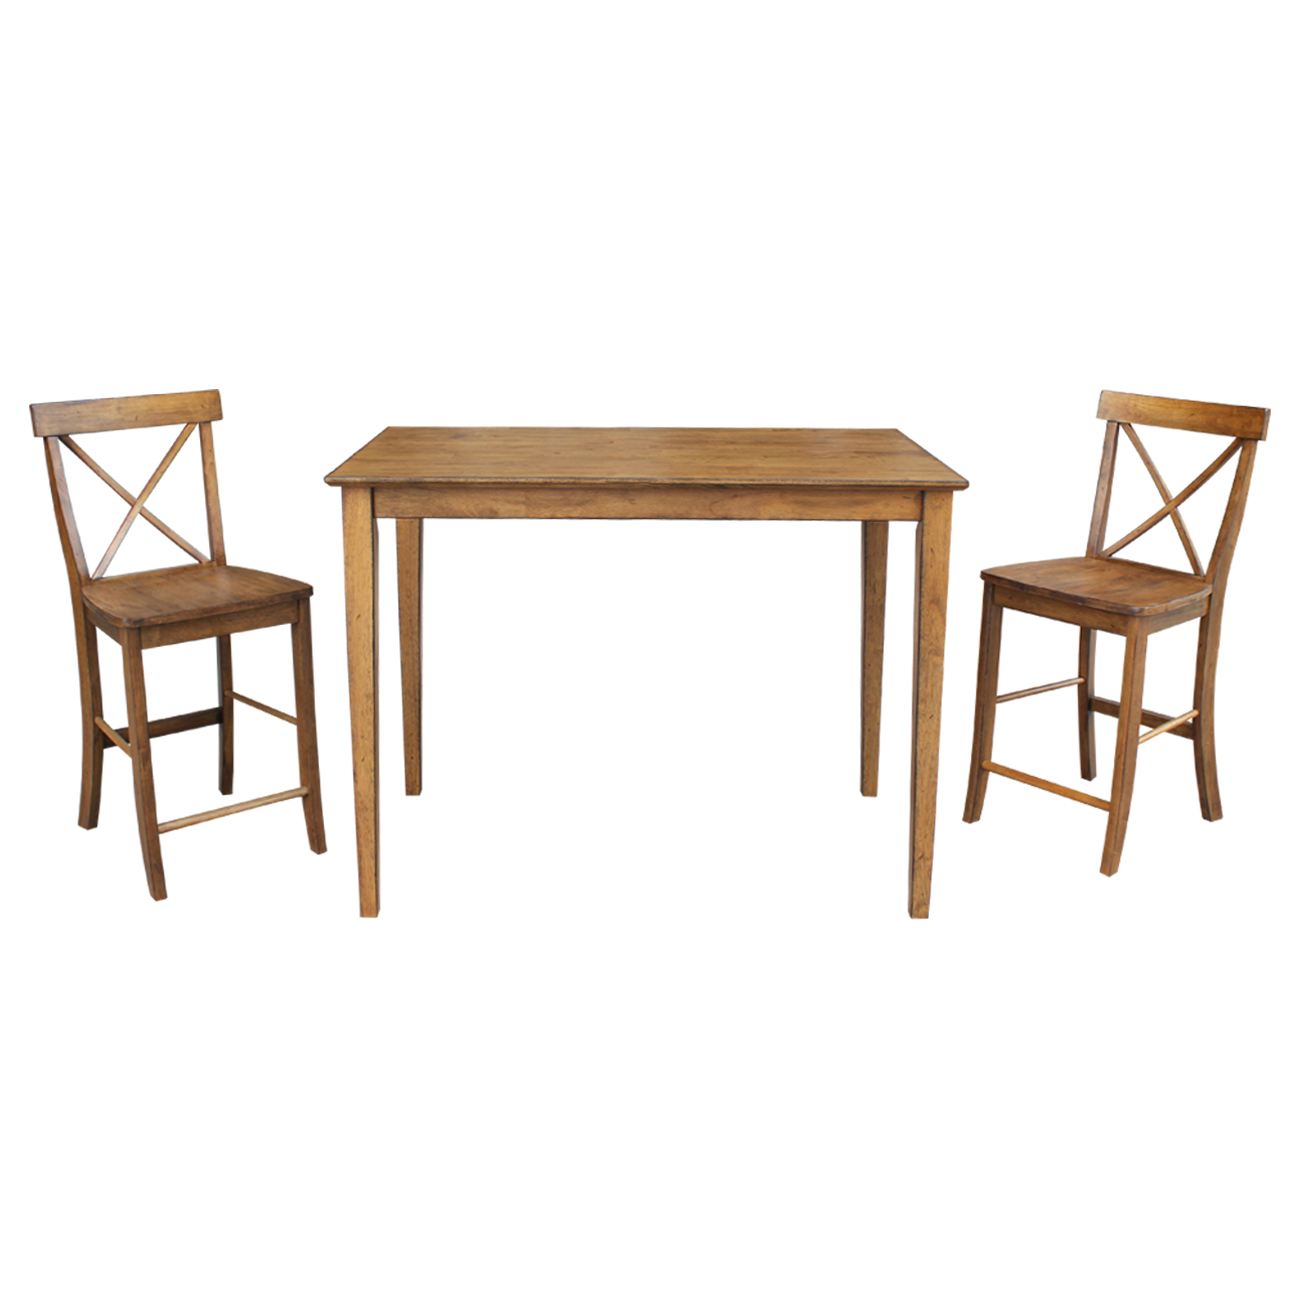 "30"" x 48"" Counter Height Table with 2 X-back Stools in Pecan - Set of 3"